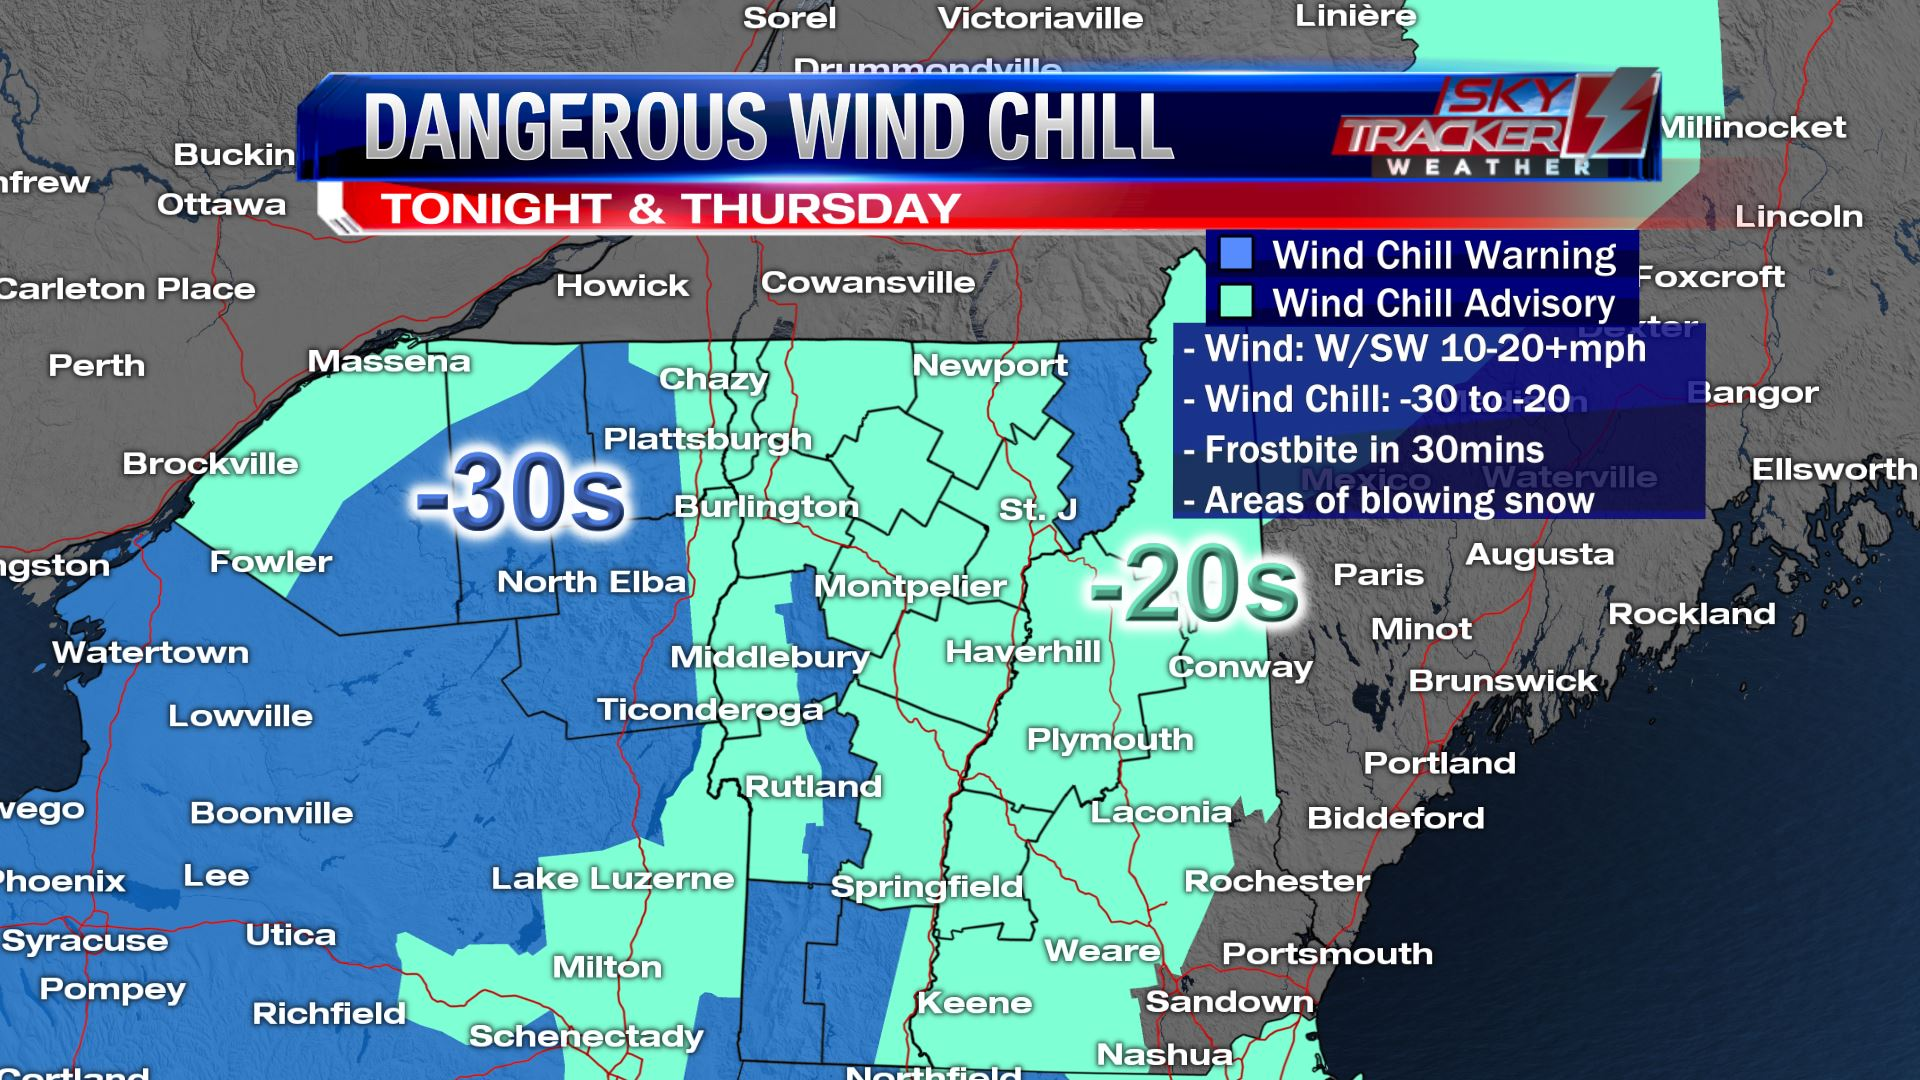 Dangerous wind chills January 30 & 31 2019